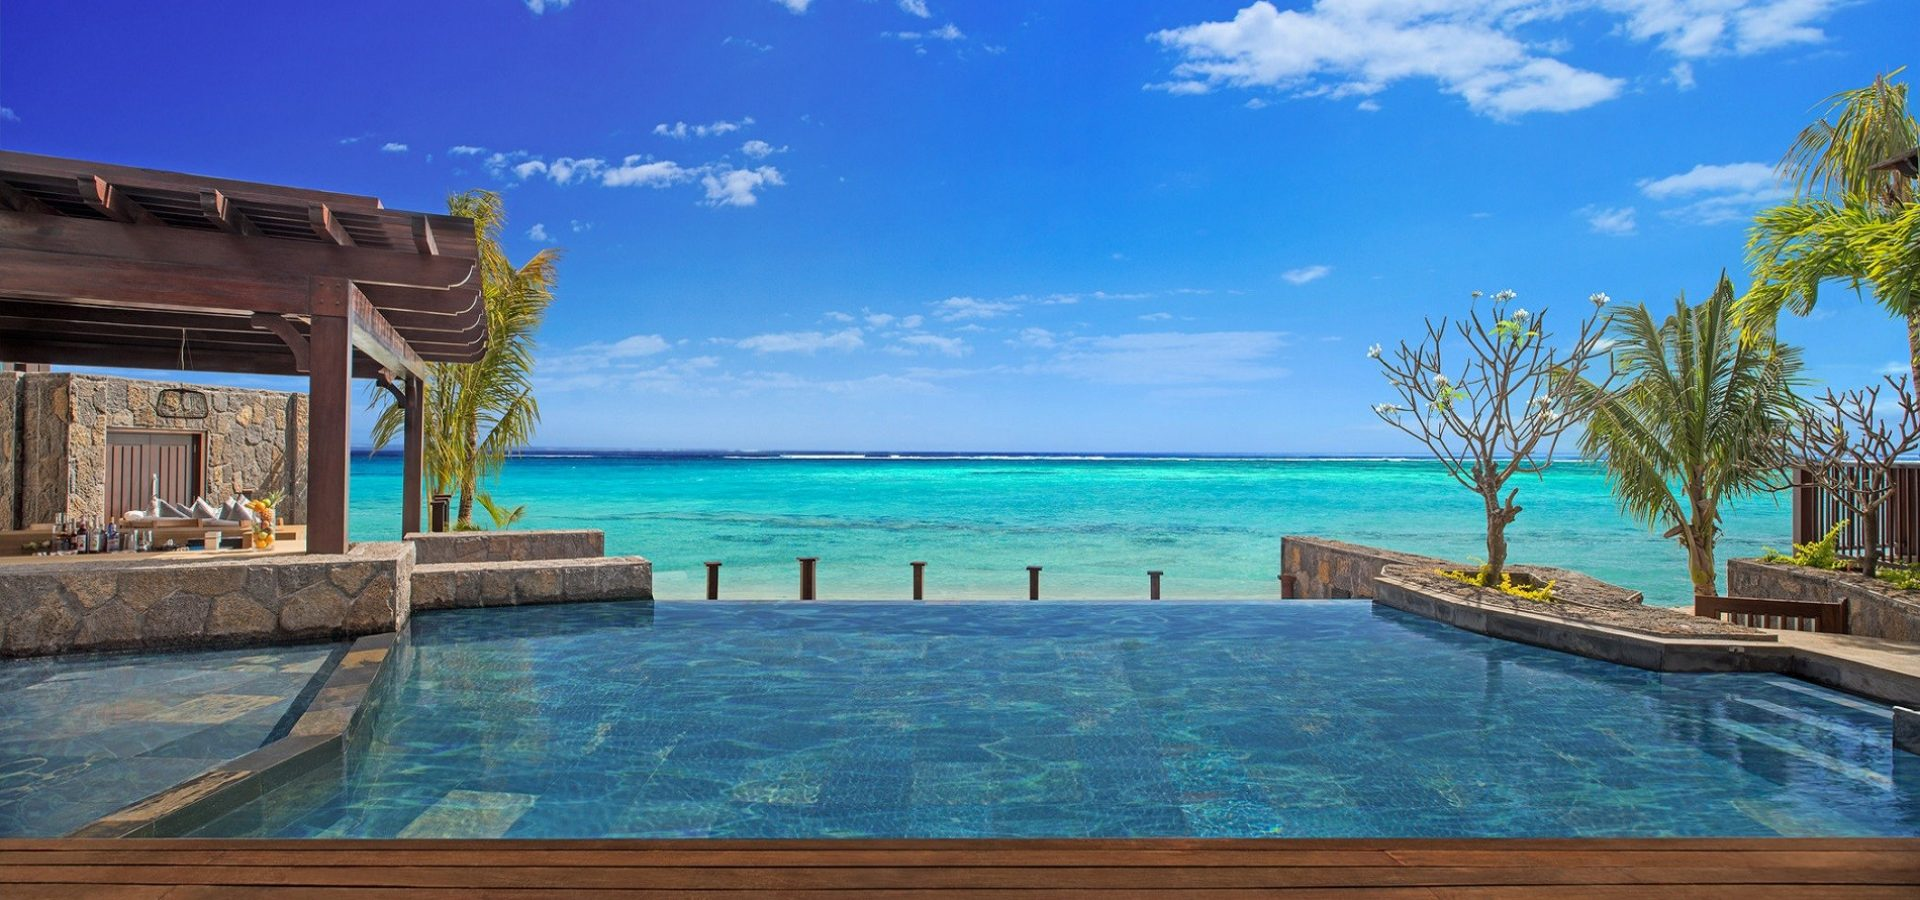 the-st-regis-mauritius-resort-6-906d188b-2e3d-4922-8a5d-3df9a90d4d8b